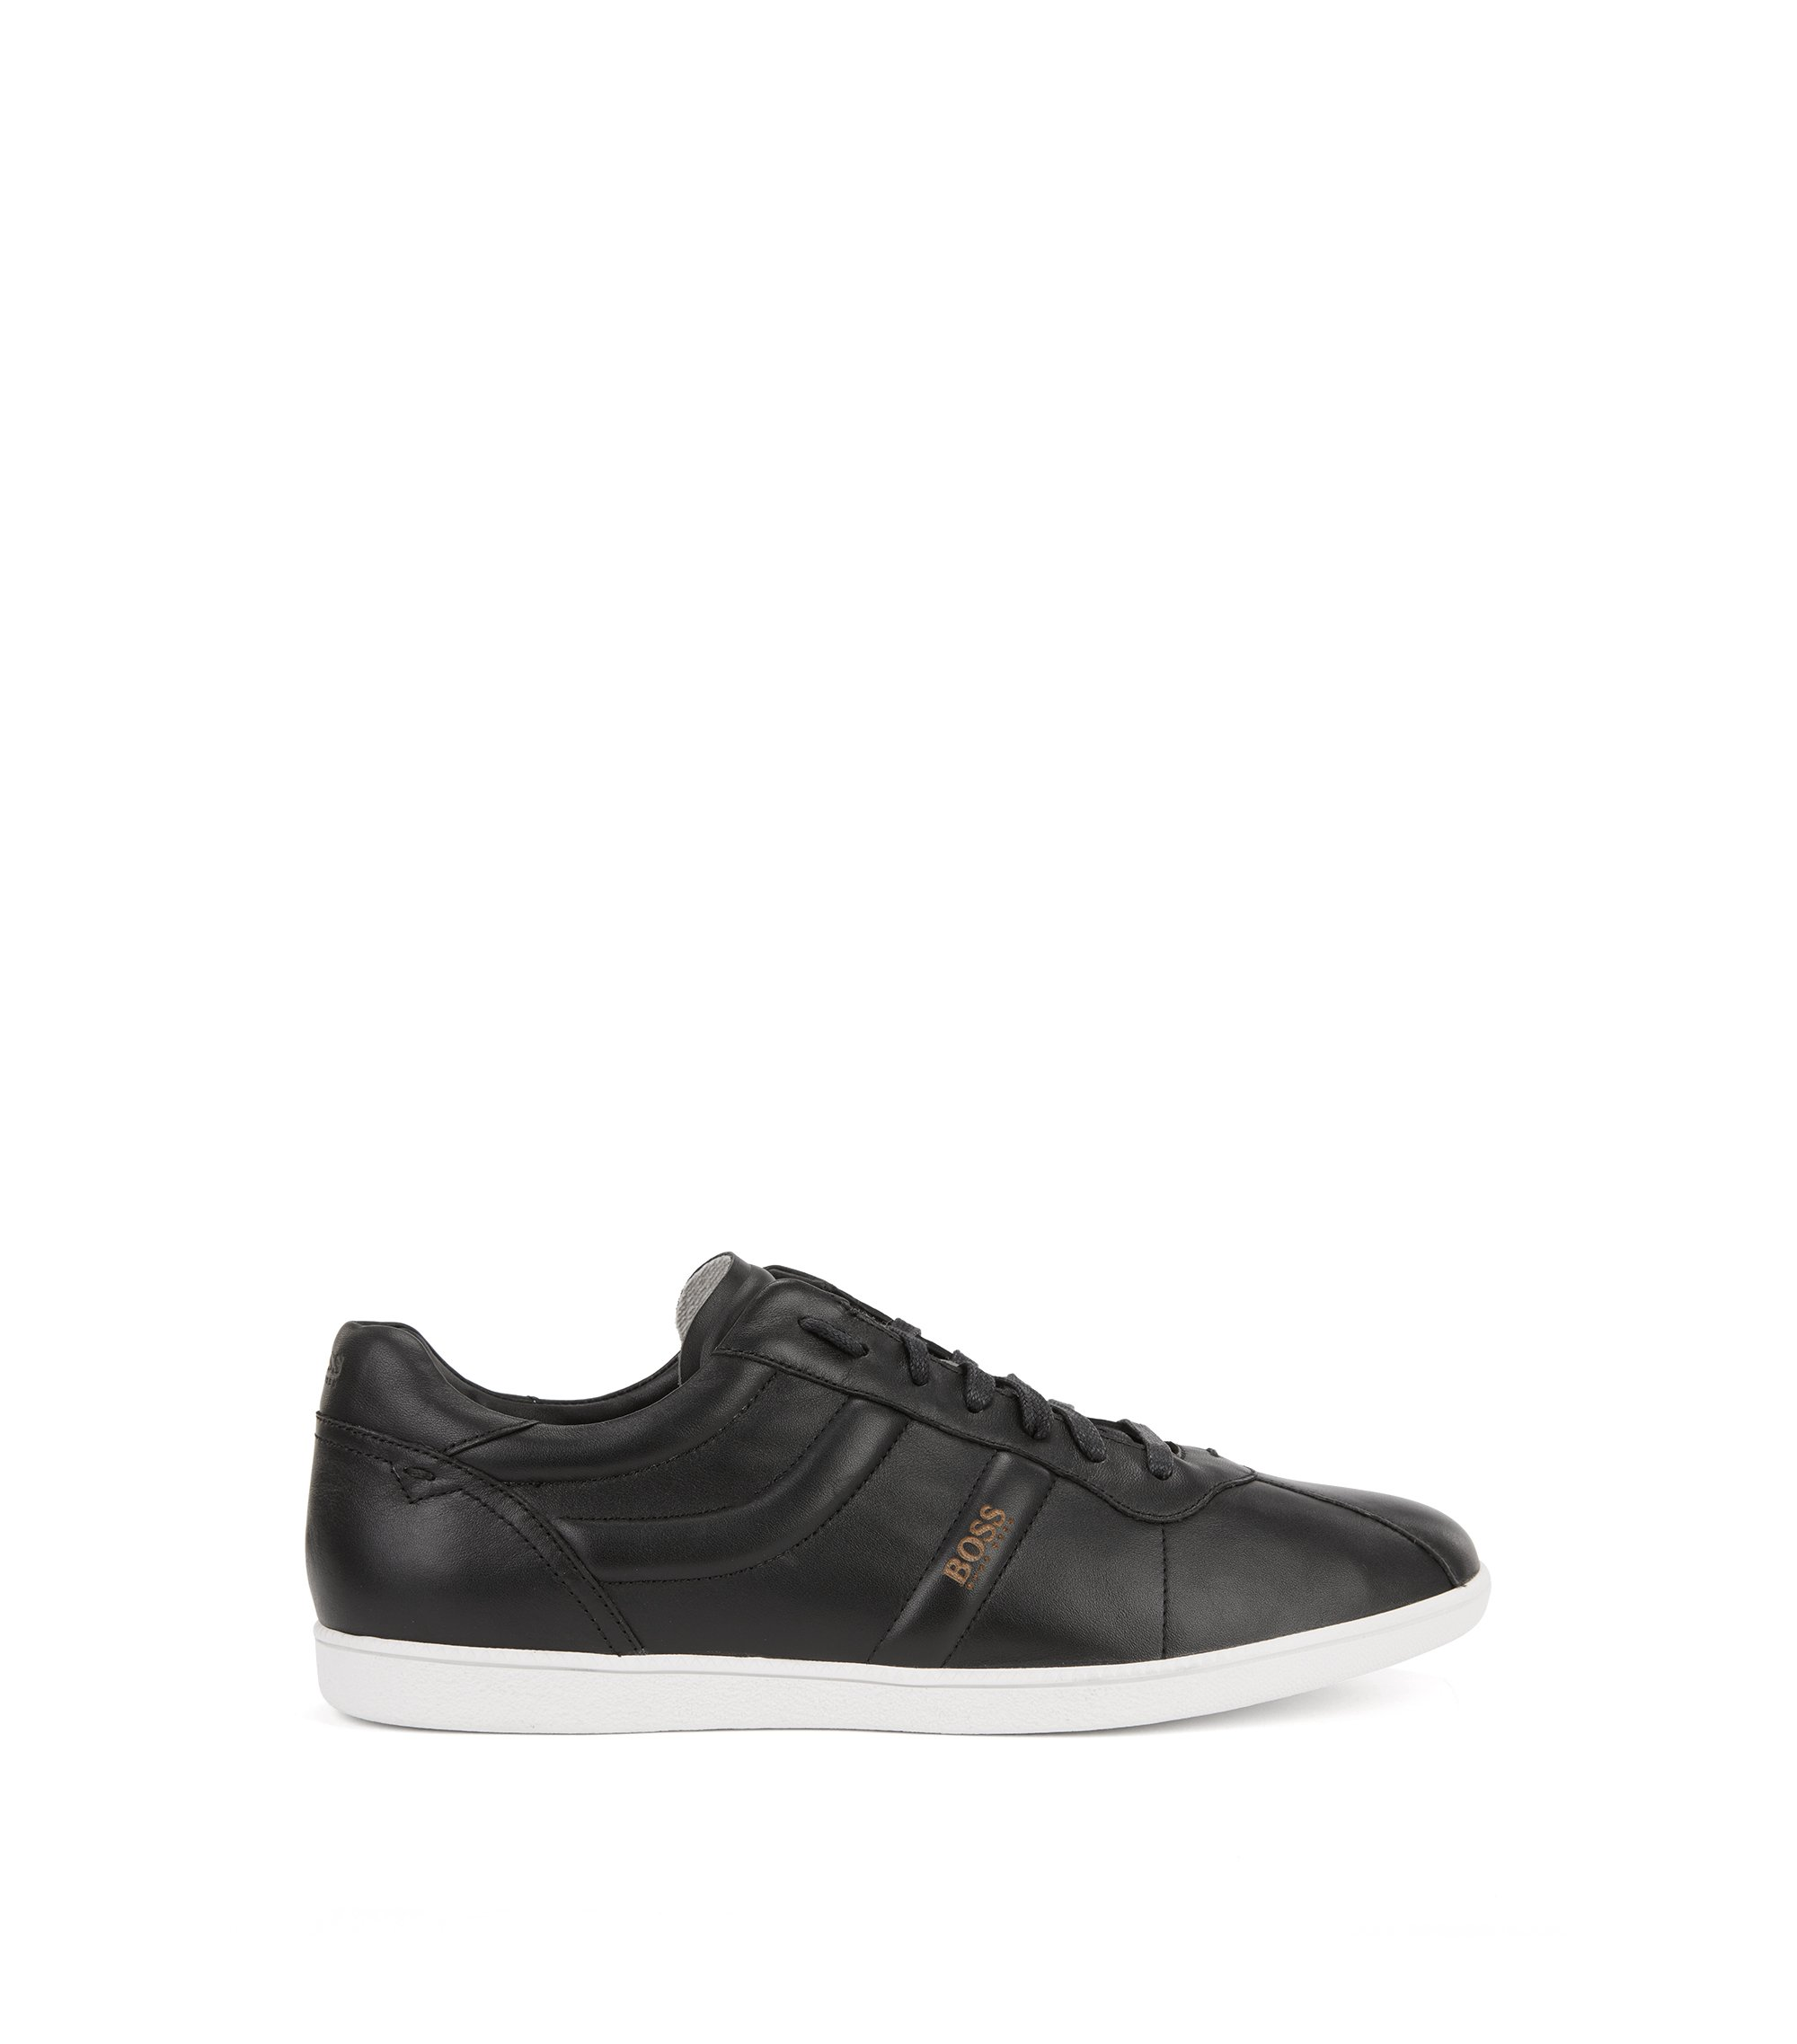 Sneakers low-top in pelle nappa, Nero